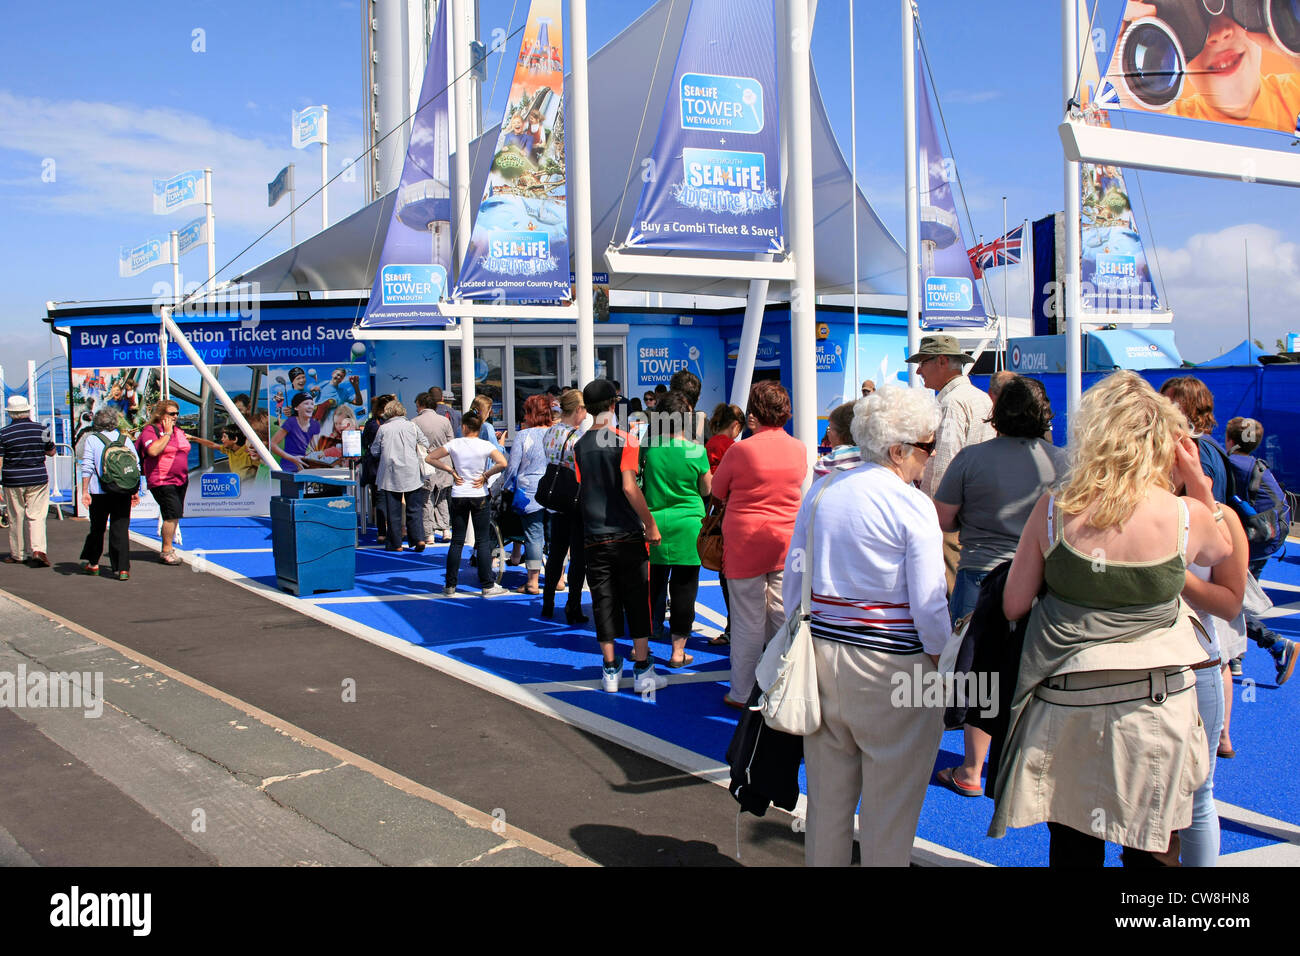 People outside the new Sealife Tower at Weymouth Dorset - Stock Image